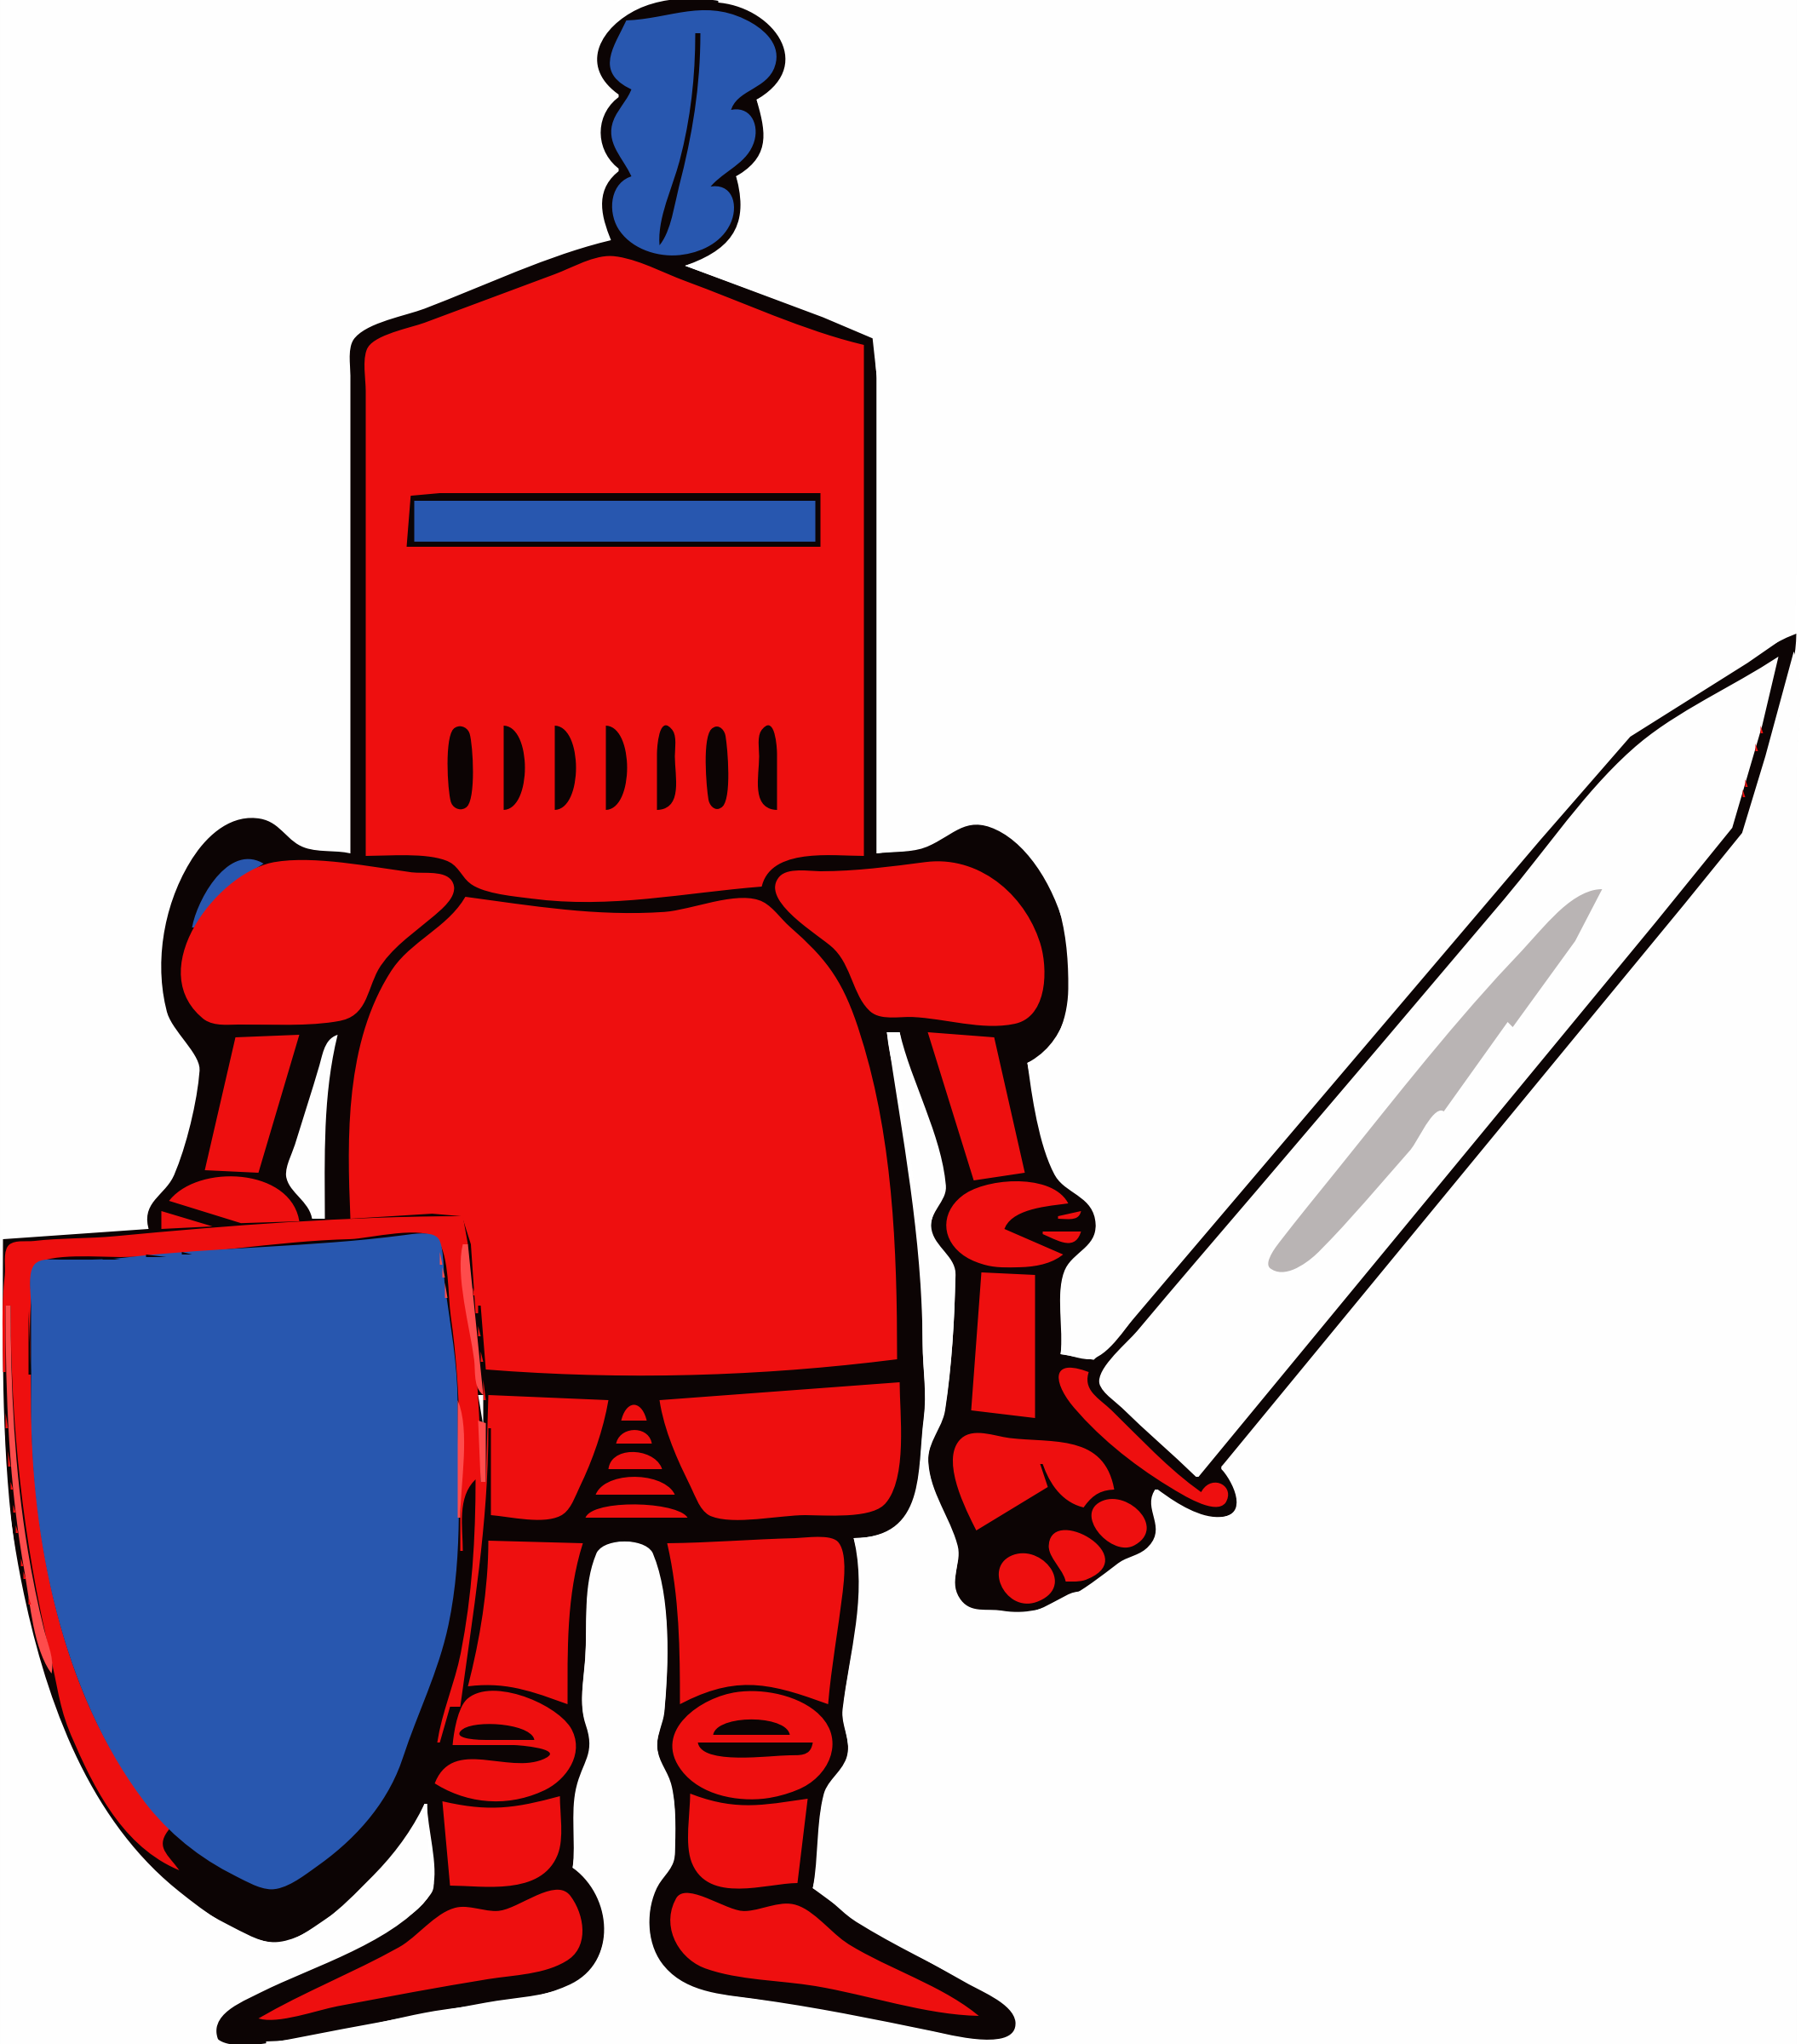 3 clipart knights. Princesses shields edited big